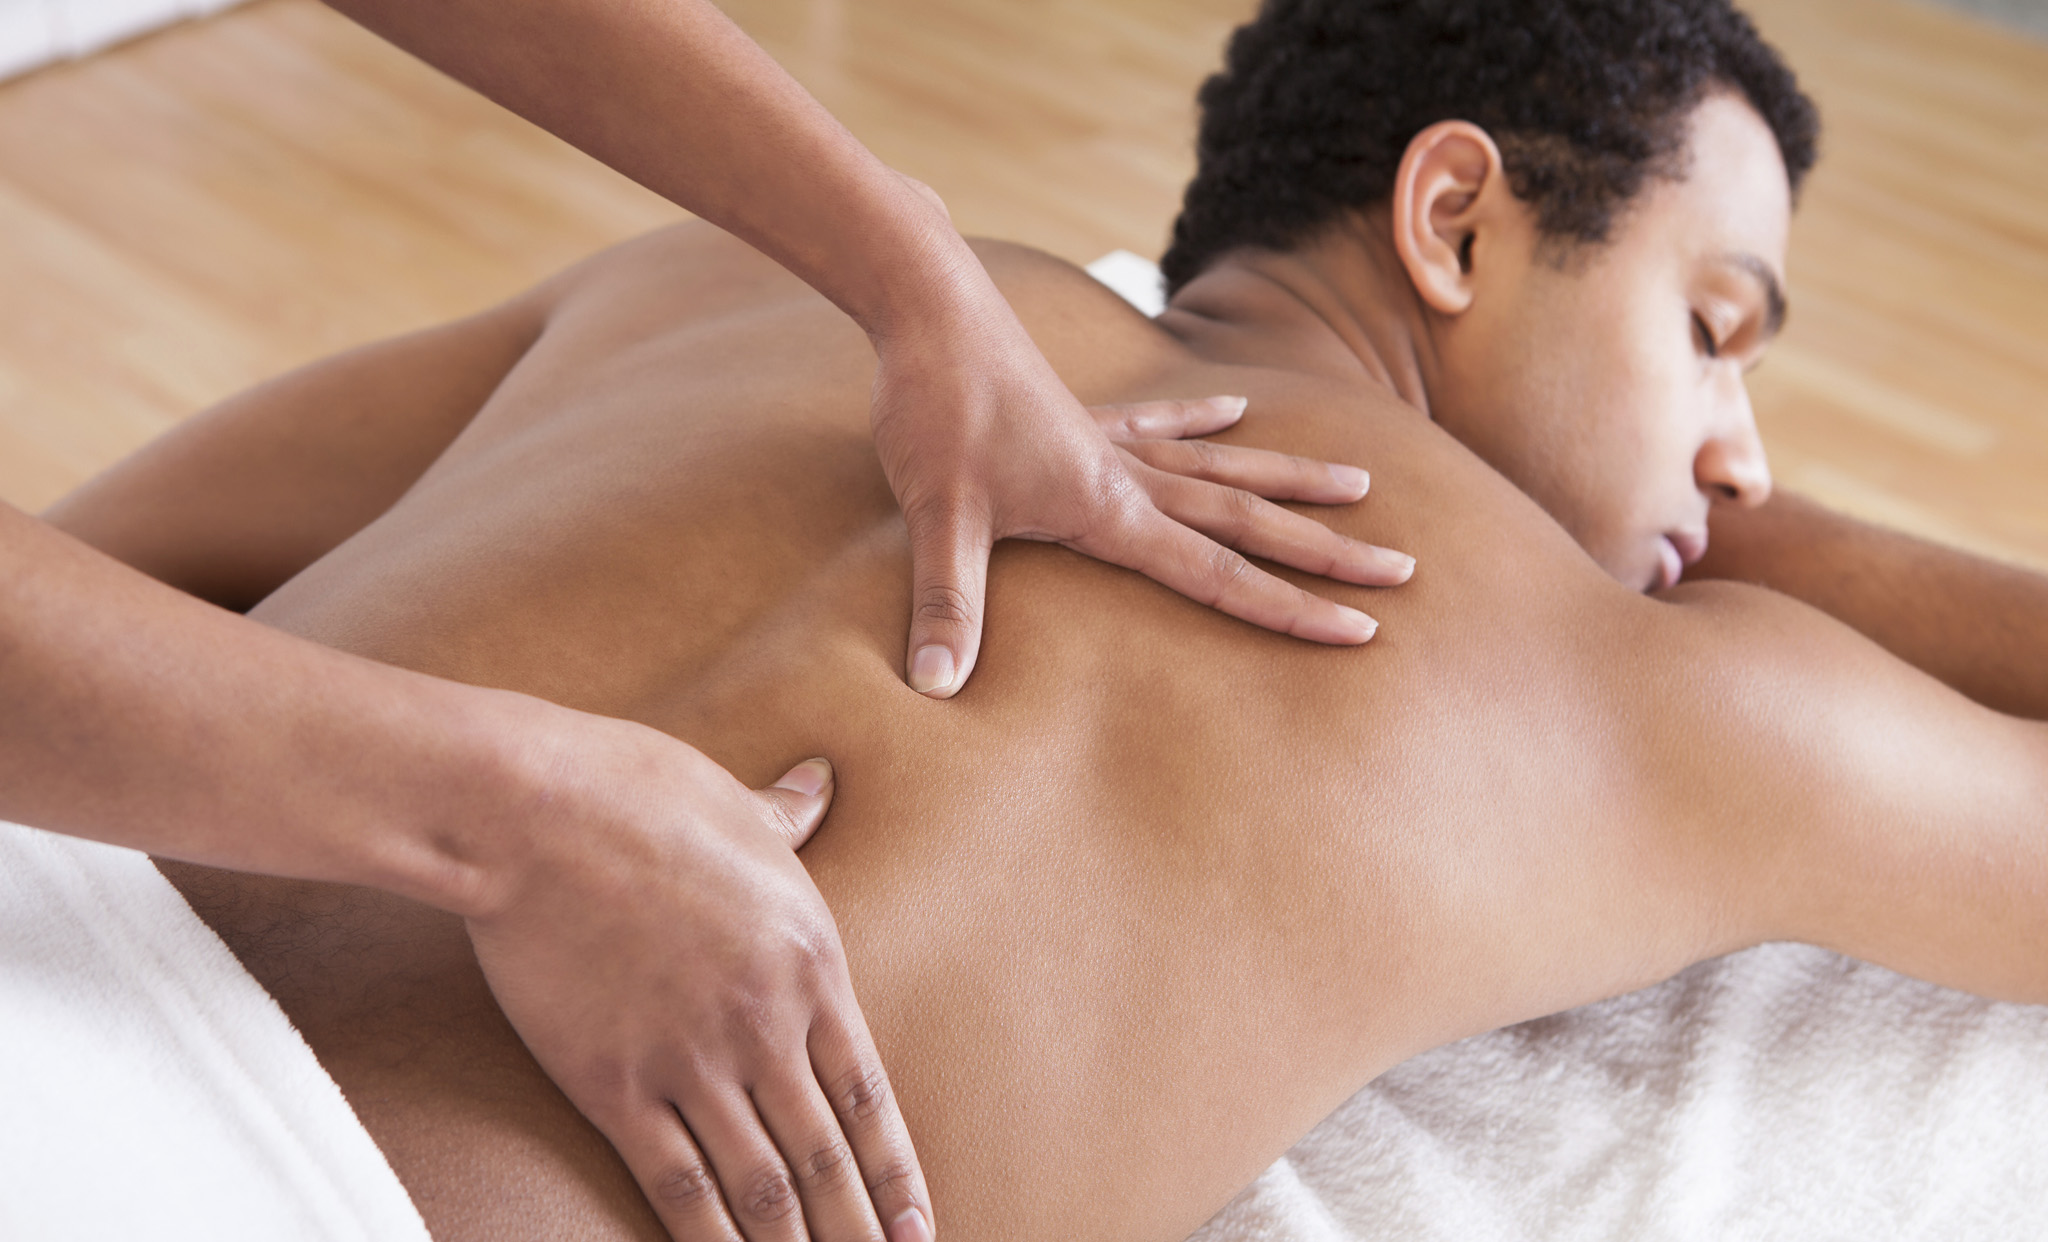 Male to male full body massage